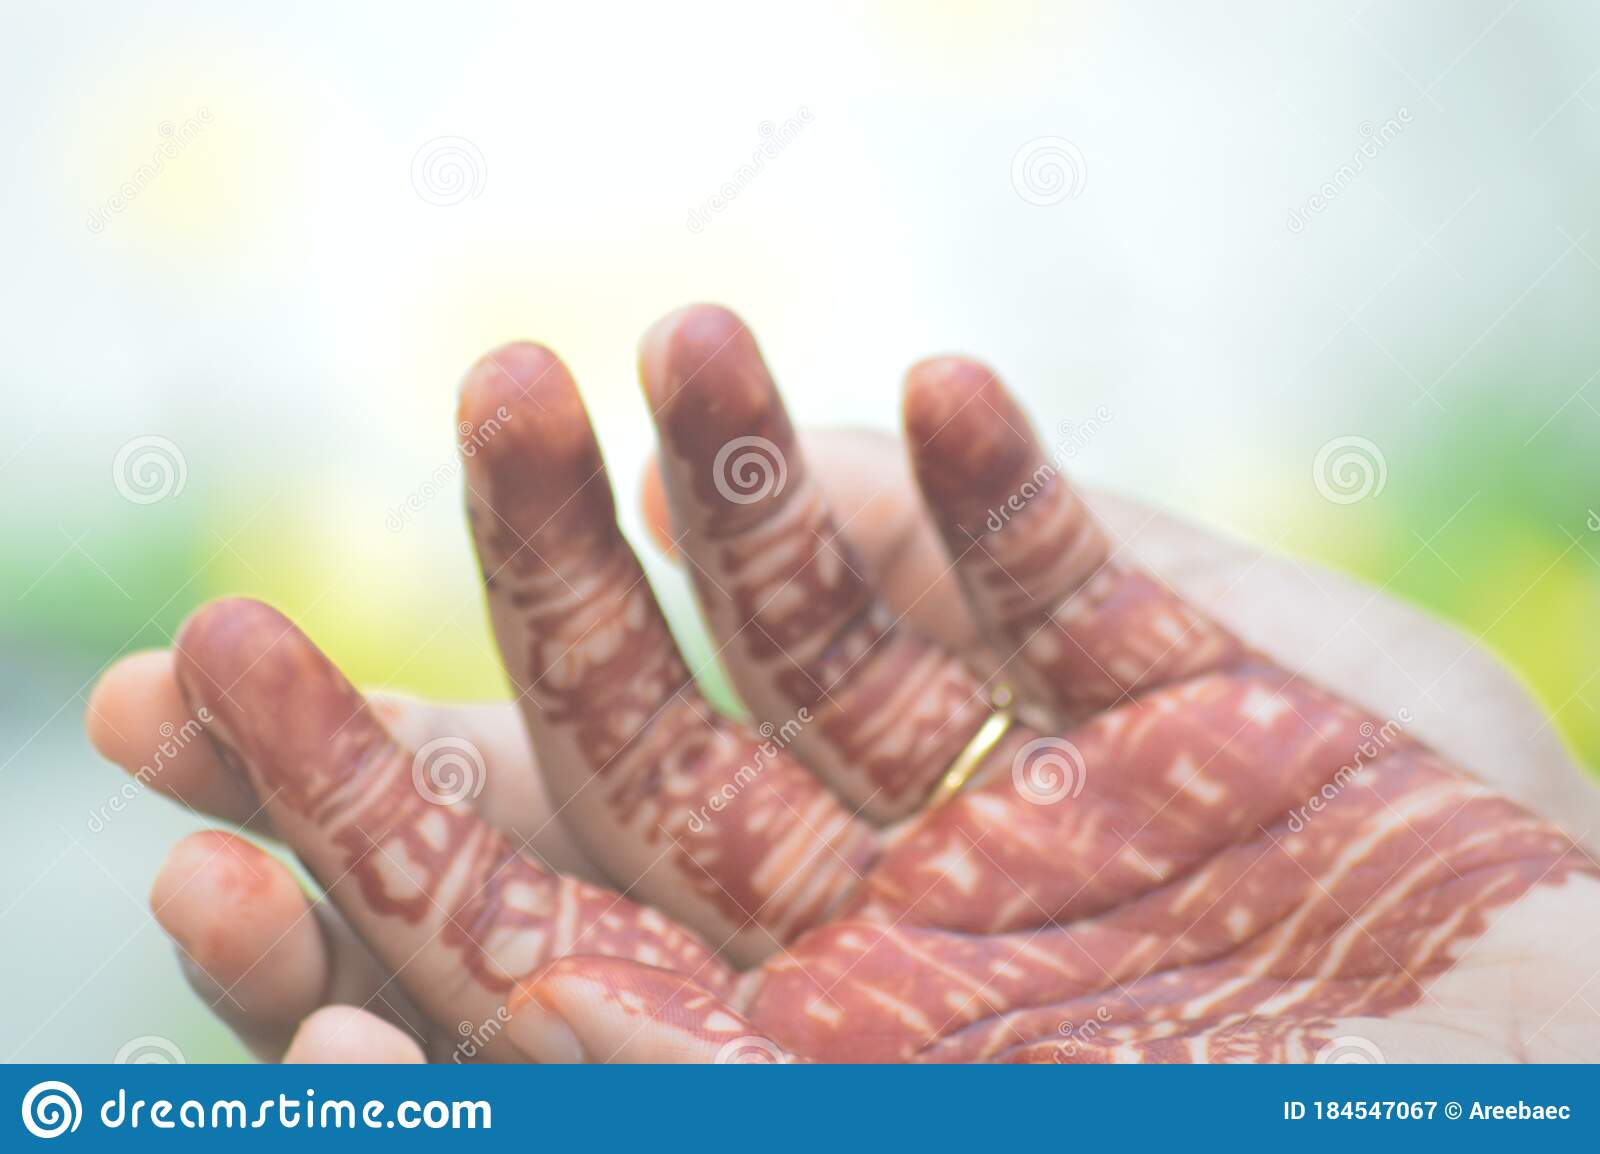 Mehandhi Application Is An Ancient Traditional Art Of India It Is A Body Art It Last For About Two Weeks Stock Image Image Of Organ Skin 184547067